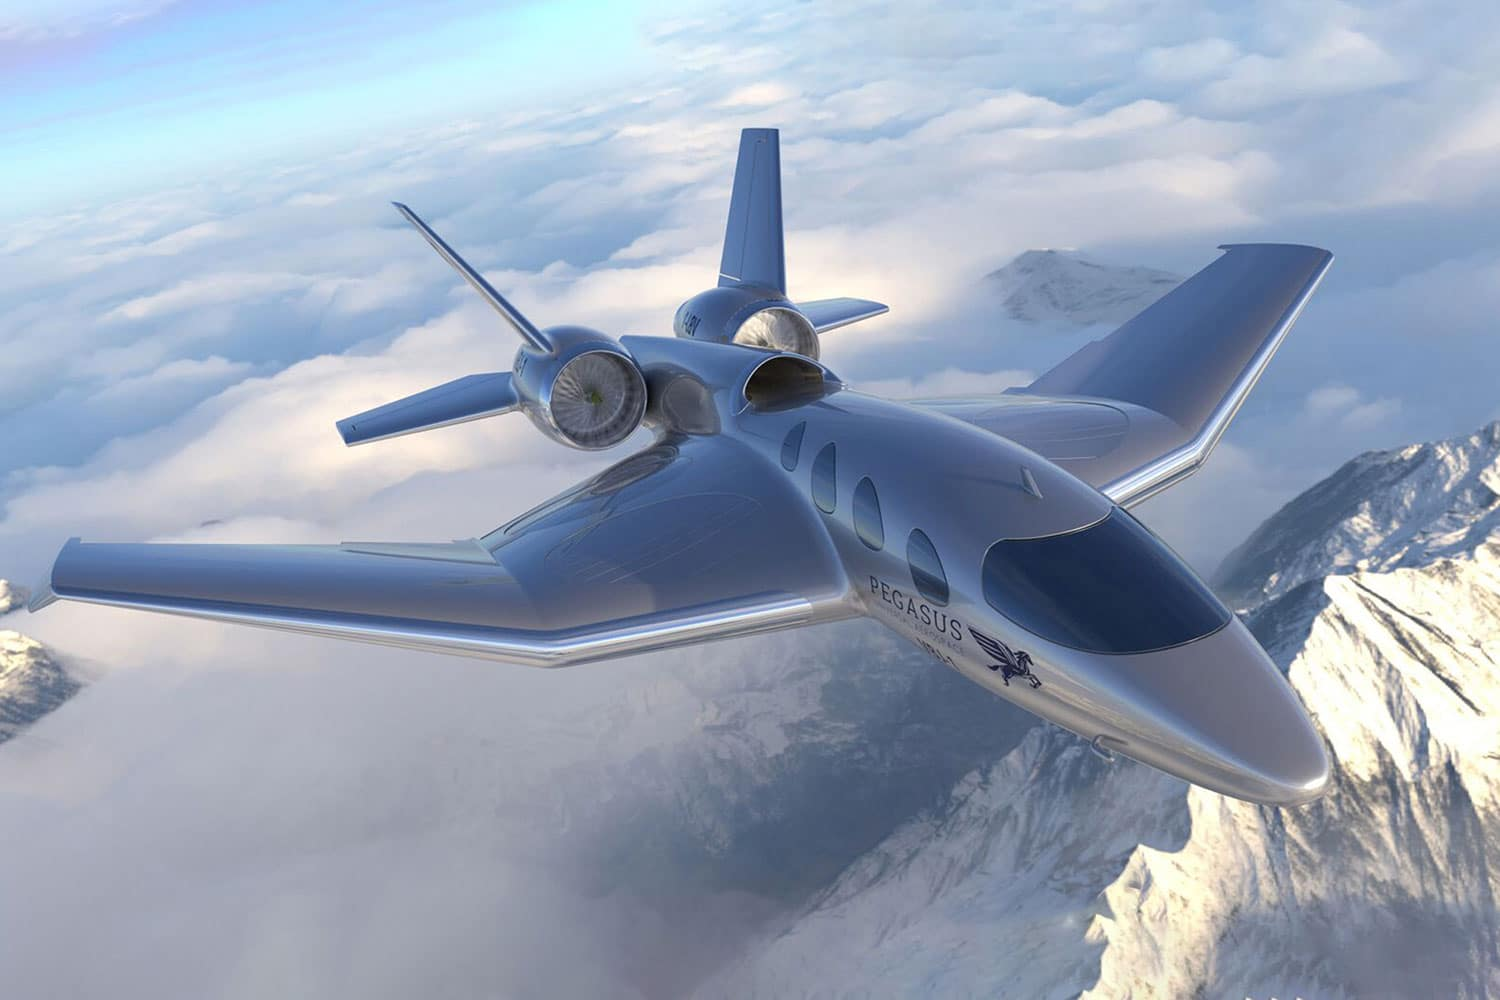 Pegasus VBJ, a true business jet that can land on almost any surface